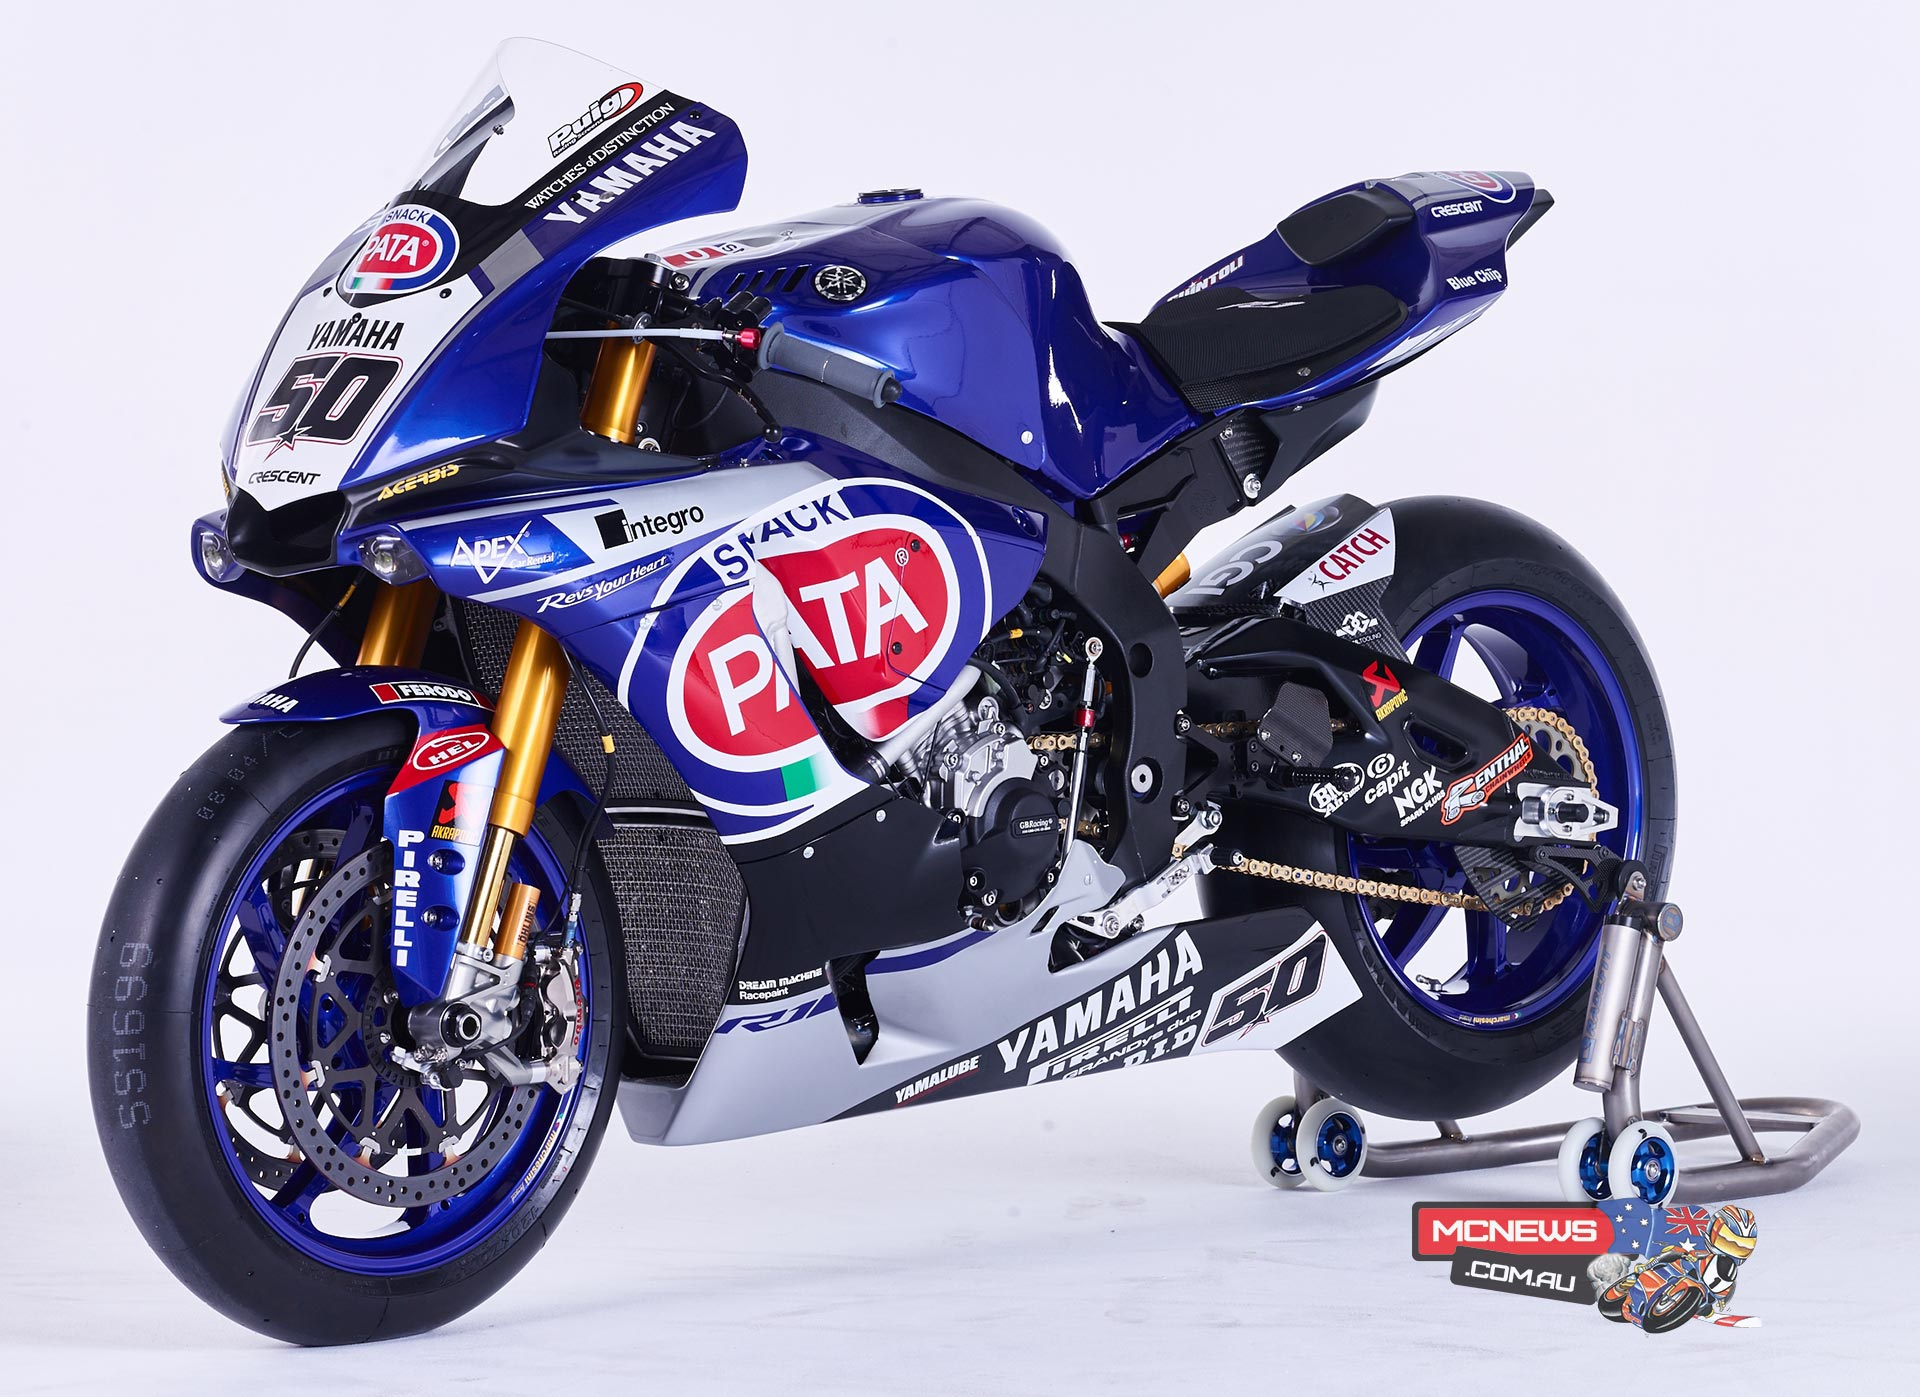 Yamaha YZF-R1M - 2016 World Superbike